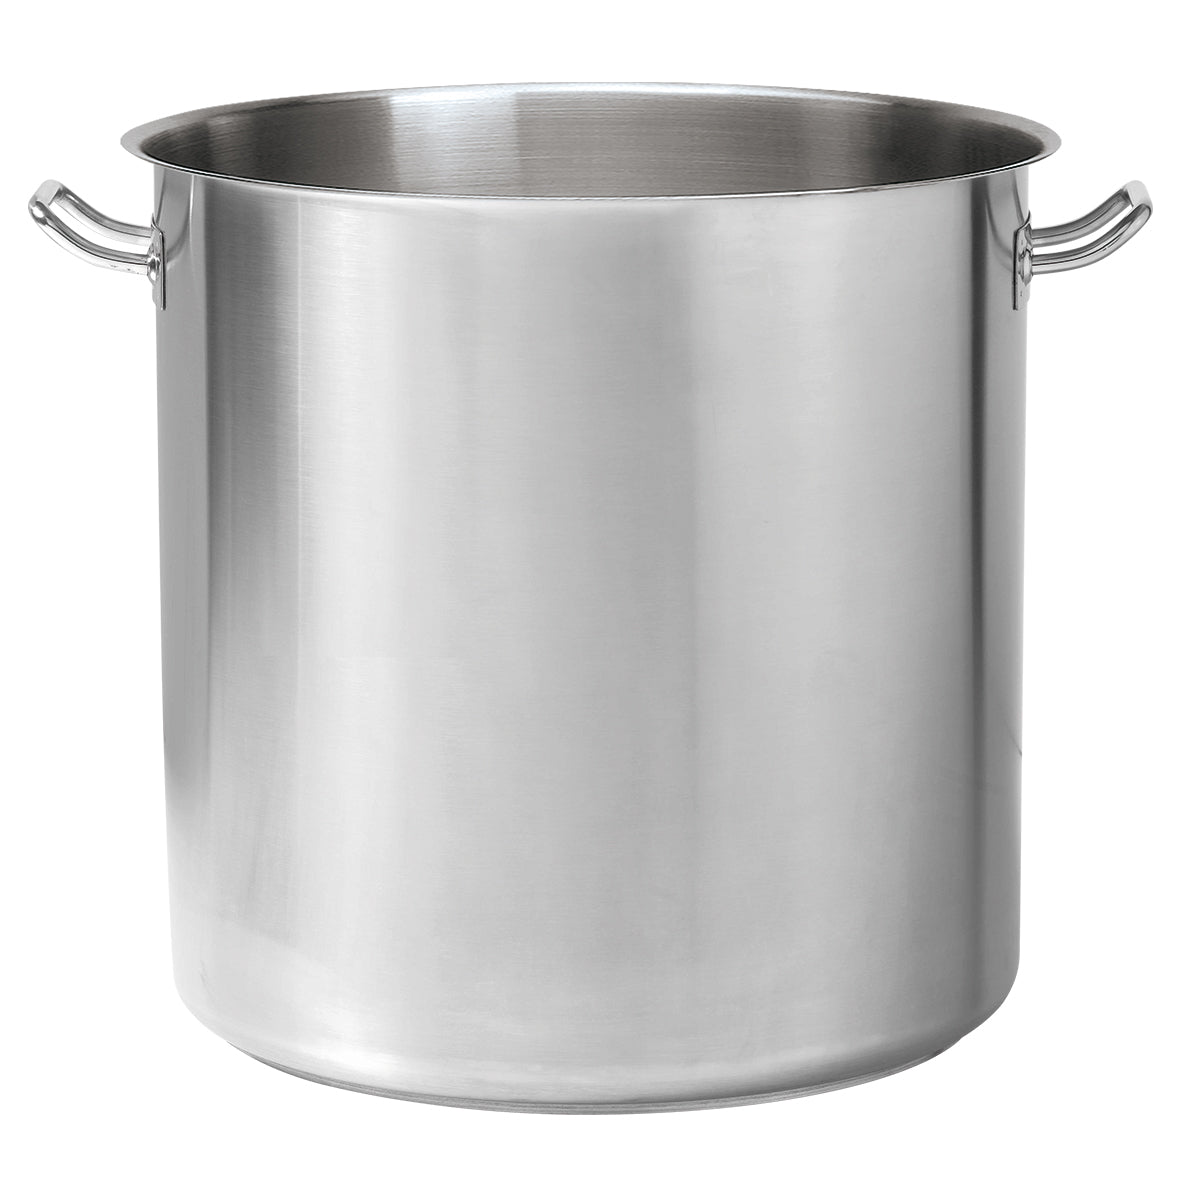 Artame 18/10 Stainless Steel Stock Pots